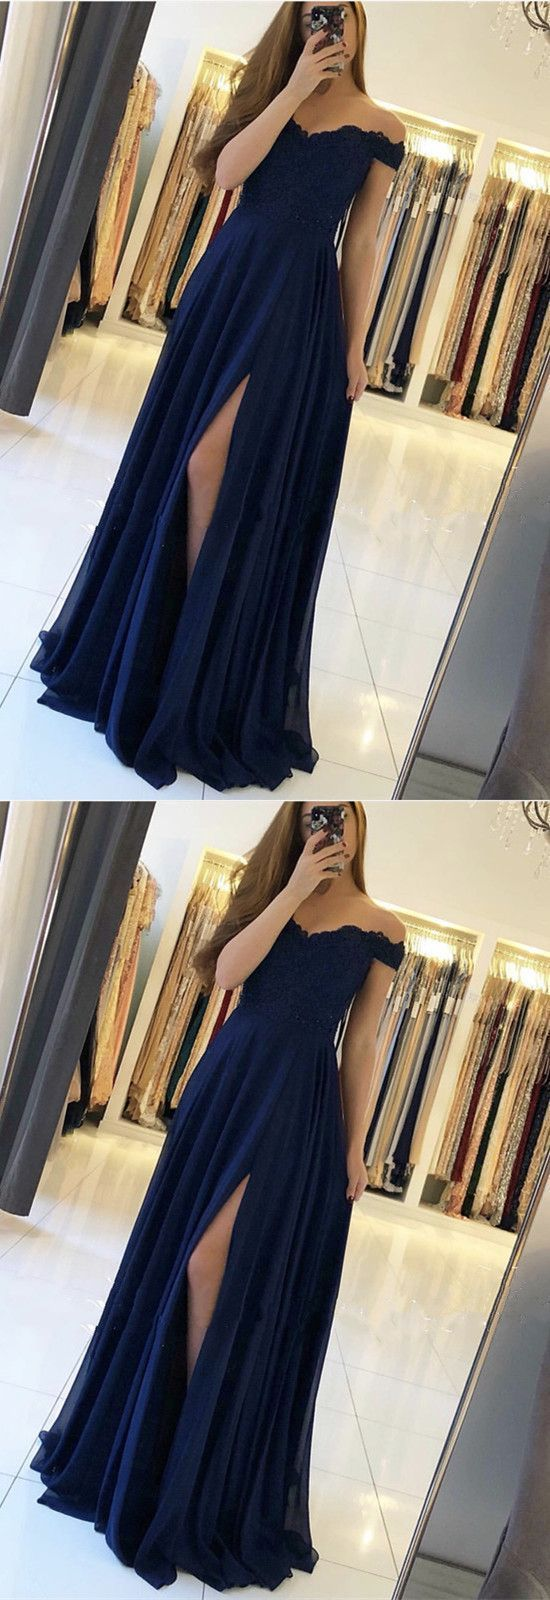 A Line Off the Shoulder Navy Blue Chiffon Long Prom Dress, Sexy Split Evening